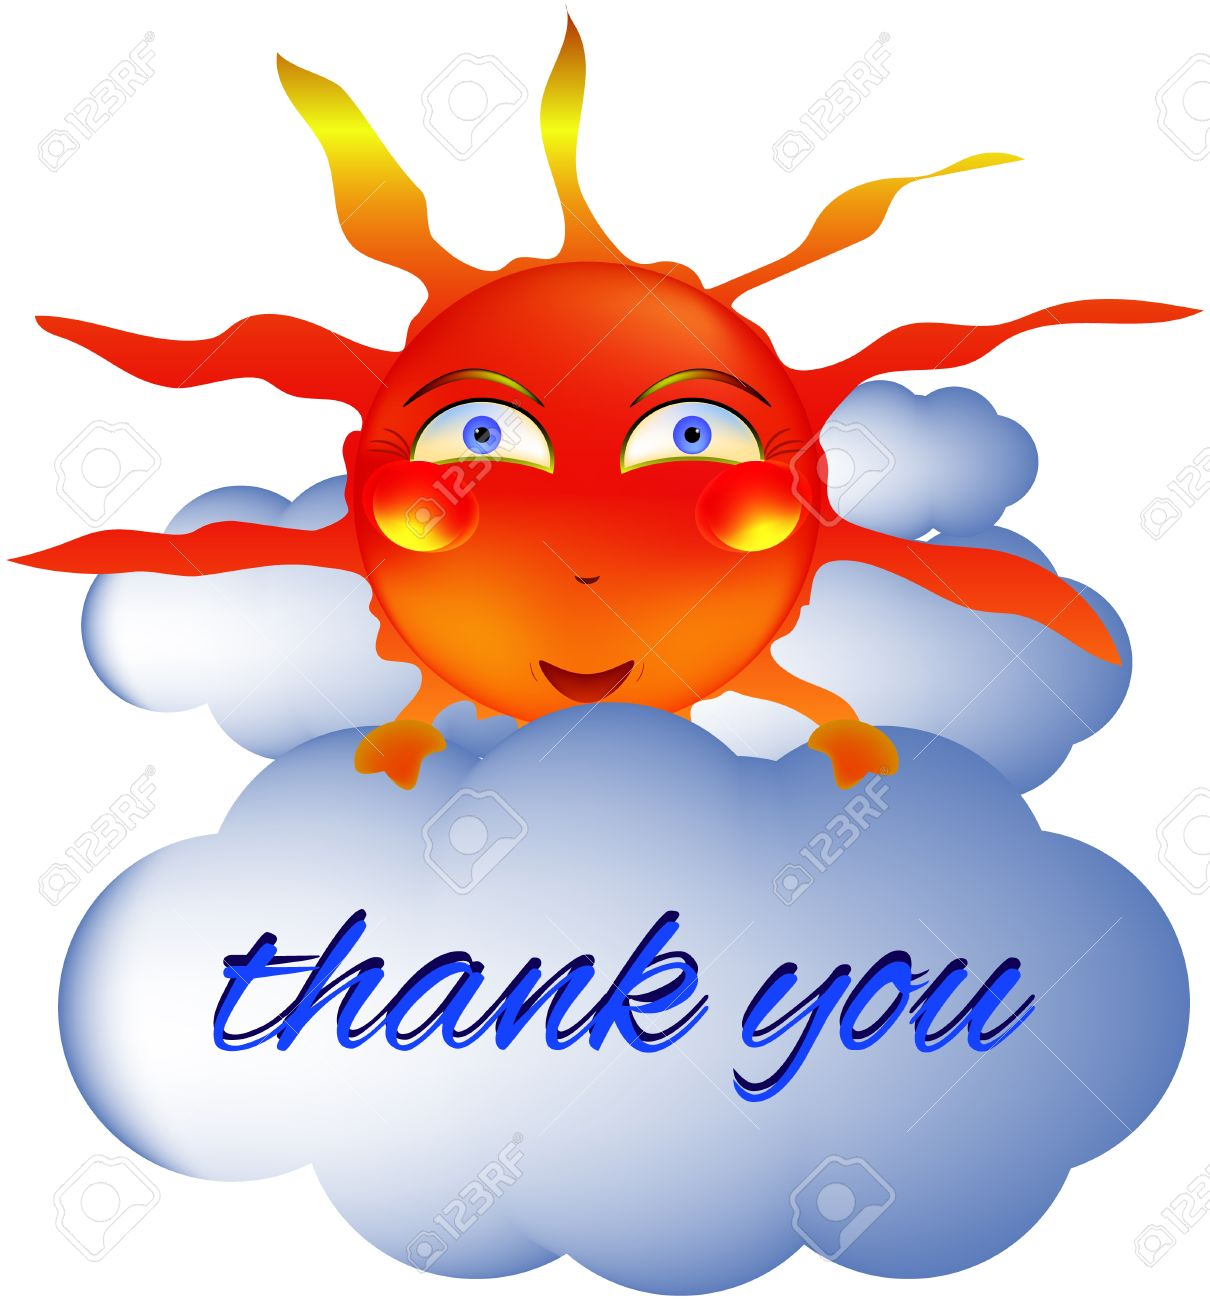 1210x1300 Sun Smiley Smiling Thank You Summer Cloud Royalty Free Cliparts